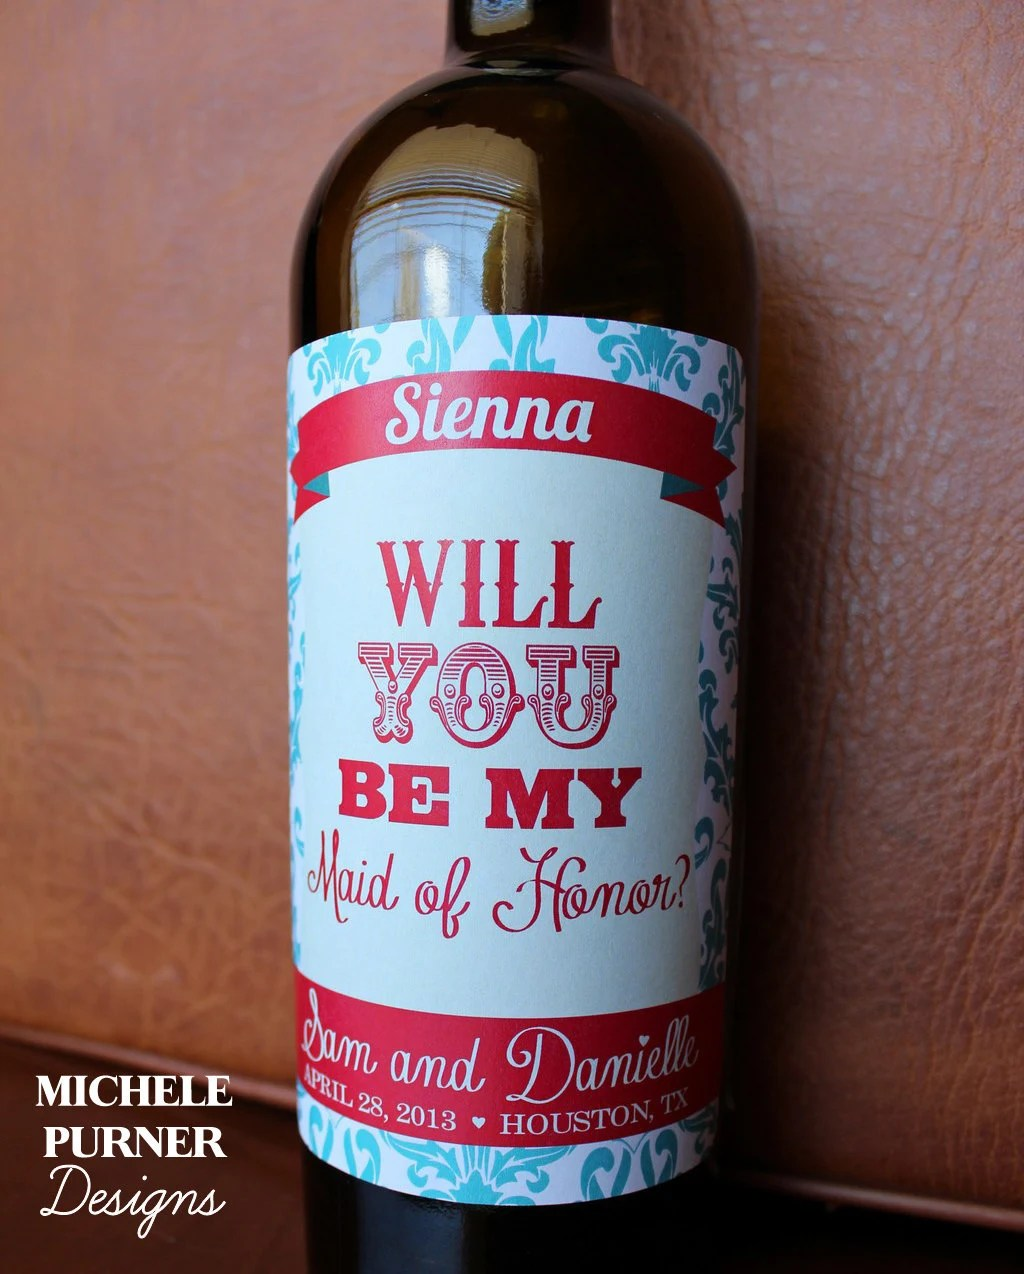 Set of 2 - Peel-and-Stick - Will you be my Bridesmaid and Maid of Honor - WINE or champagne BOTTLE LABELS - Printed & Shipped